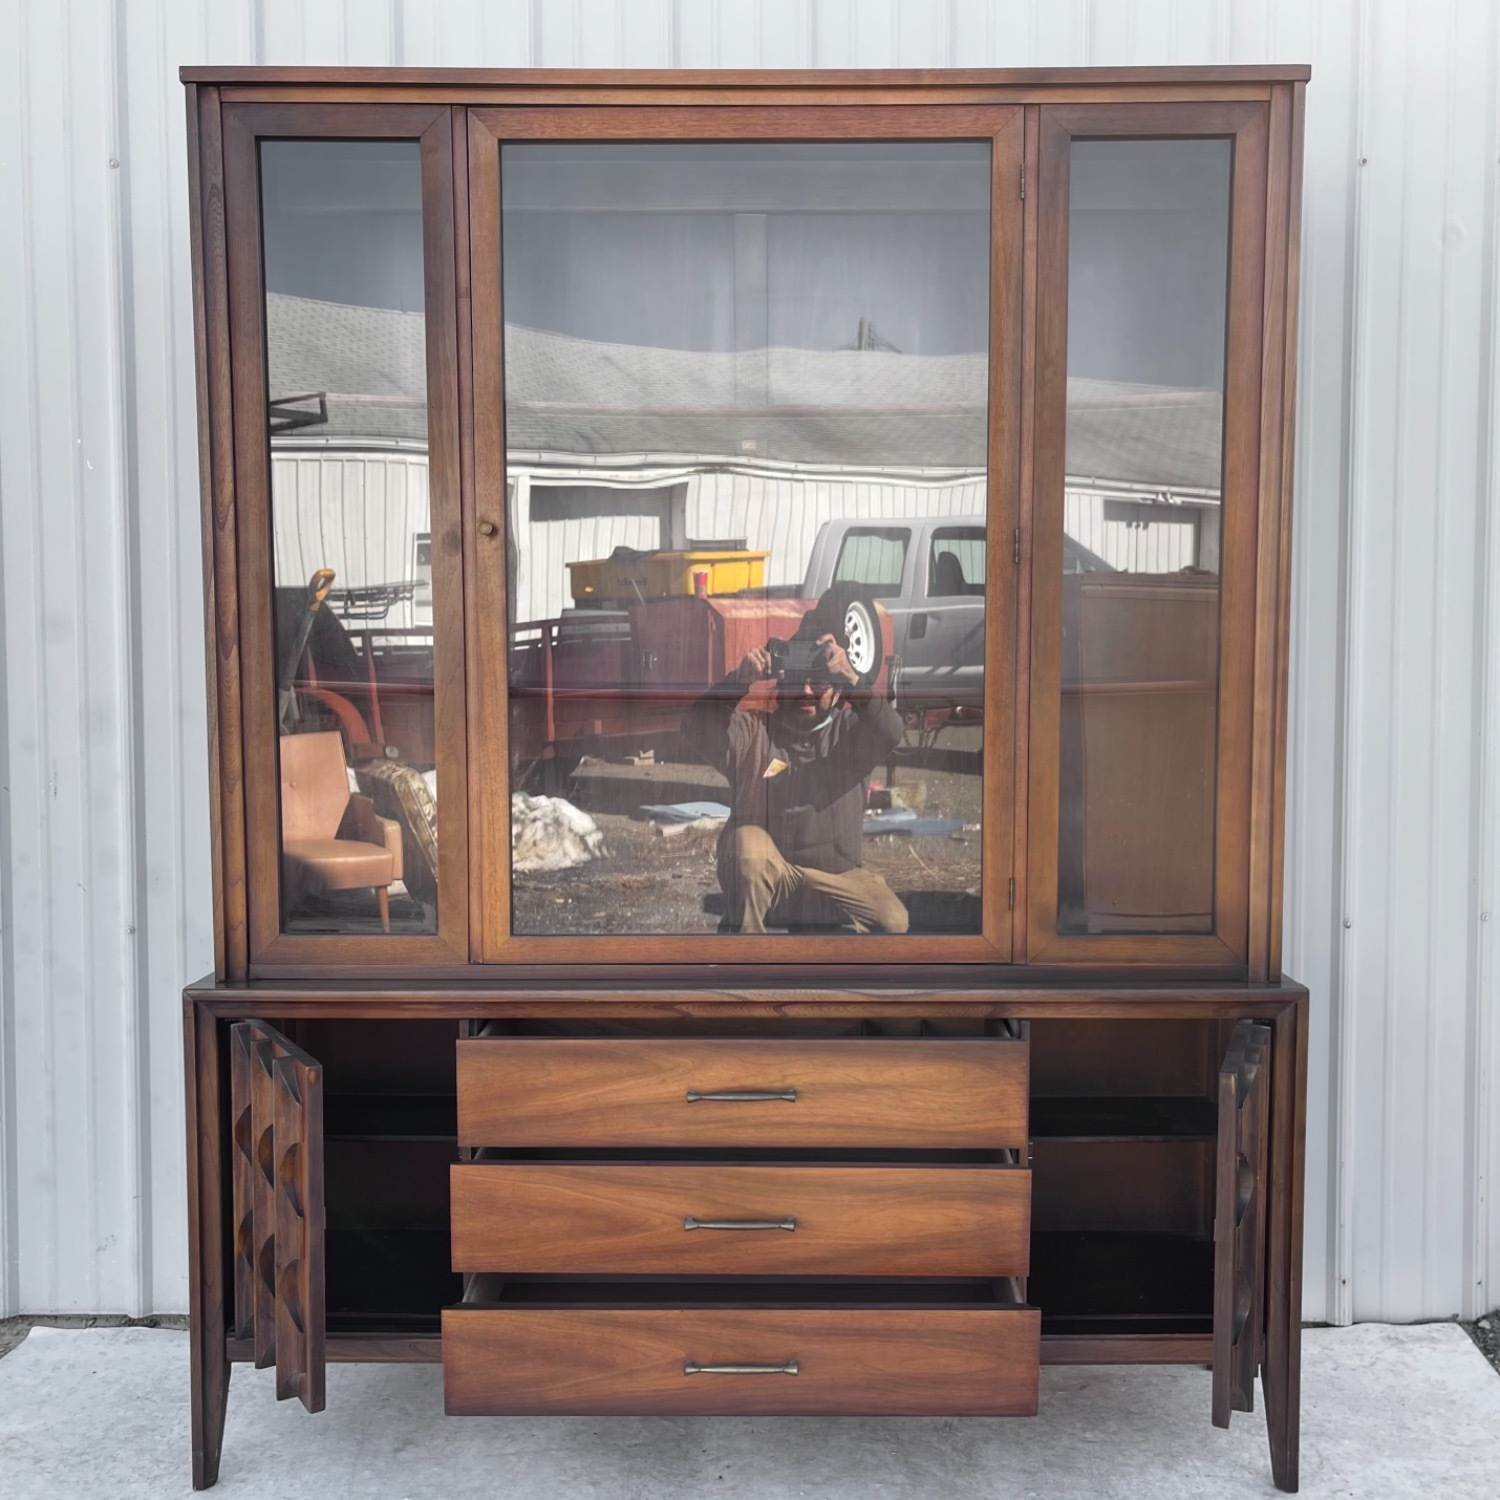 Mid-Century Modern Sideboard With Cabinet - image-2